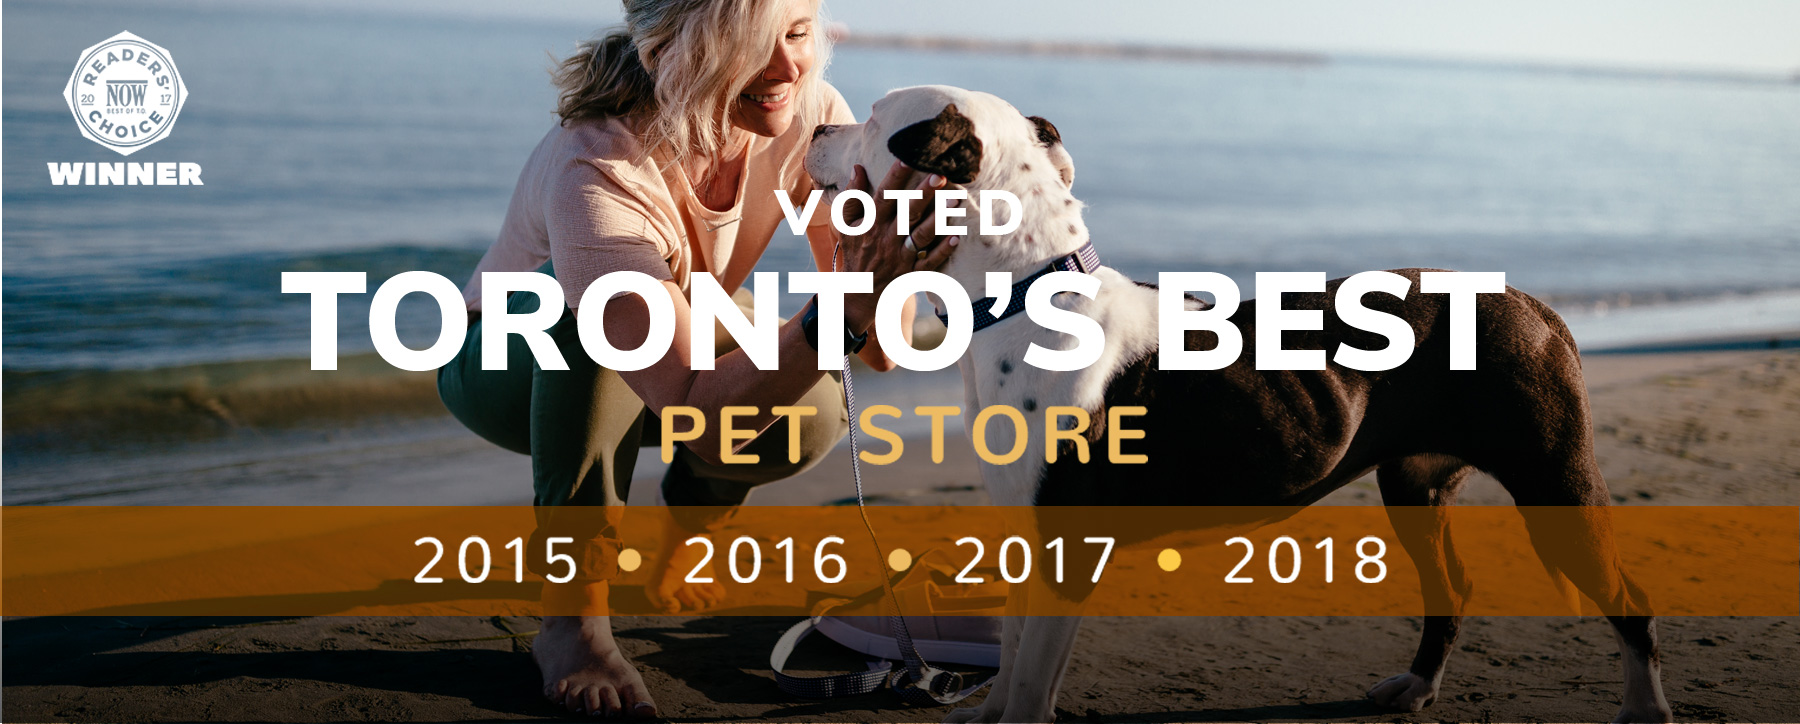 Voted Toronto's Best Pet Store